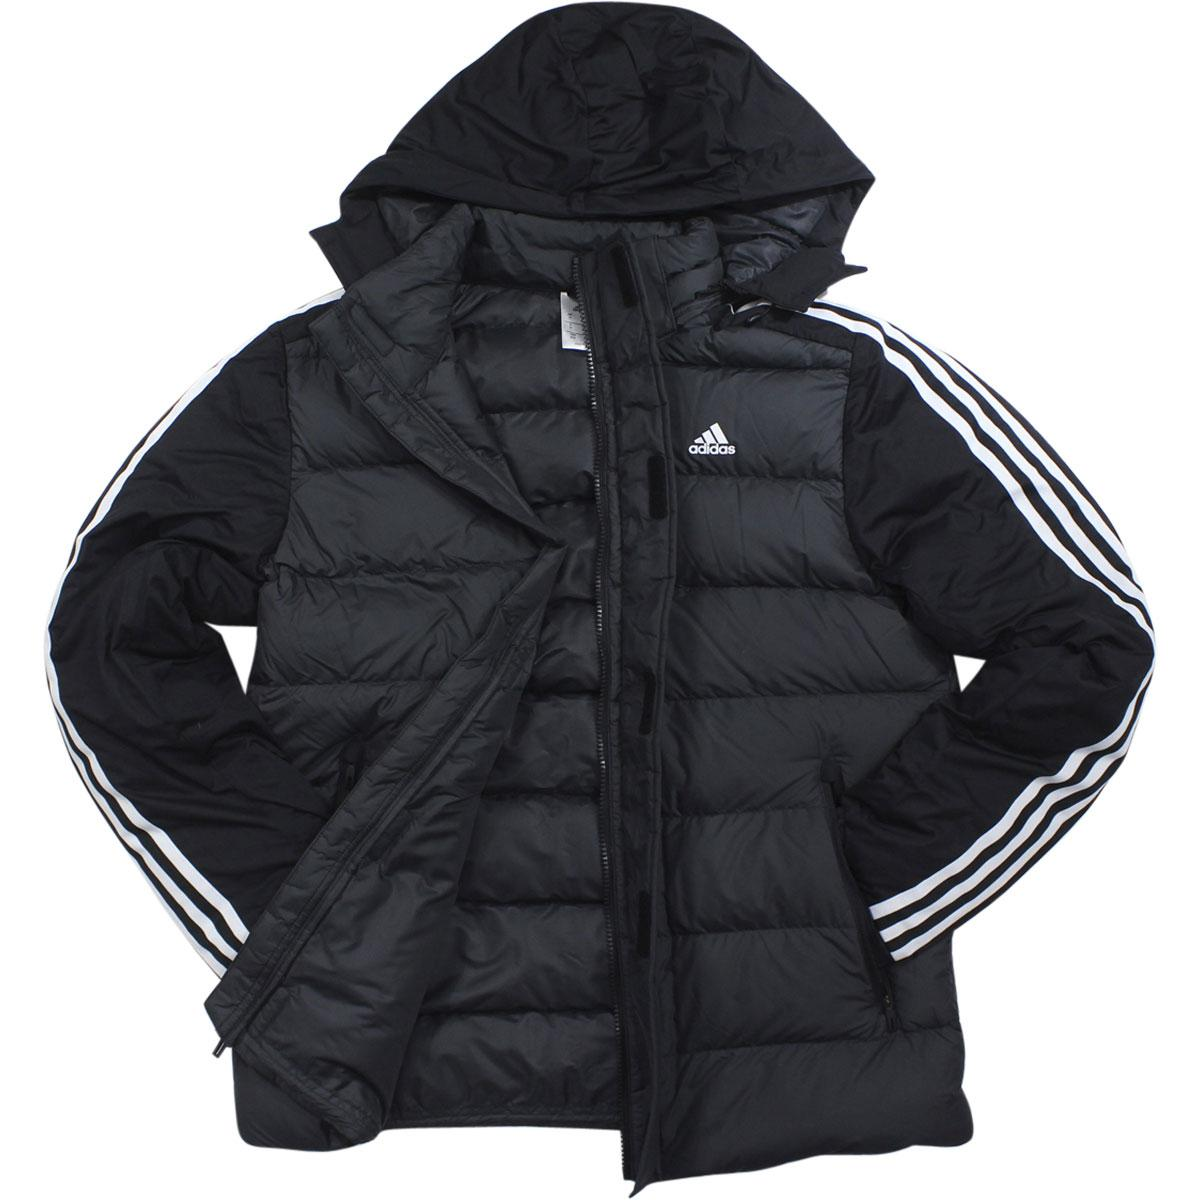 Image of Adidas All Weather Performance Itavic 3 Stripe Water Repellant Hooded Jacket - Black - X Large